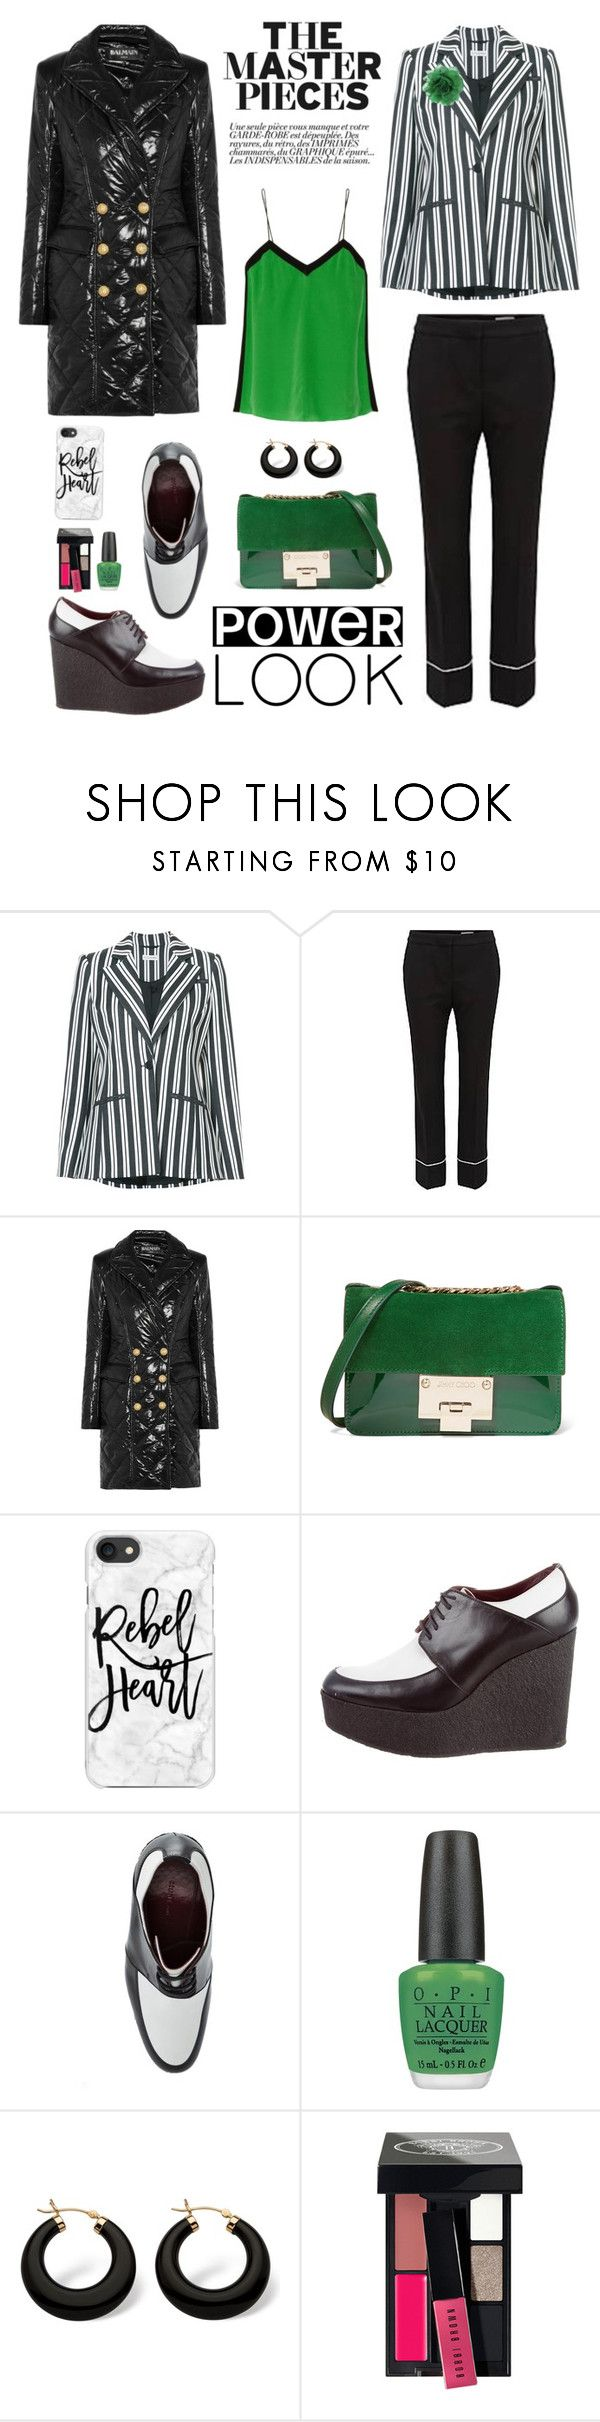 """""""Cool Power Look"""" by shortyluv718 ❤ liked on Polyvore featuring Altuzarra, HUGO, Balmain, Jimmy Choo, Casetify, CÉLINE, Palm Beach Jewelry and Bobbi Brown Cosmetics"""